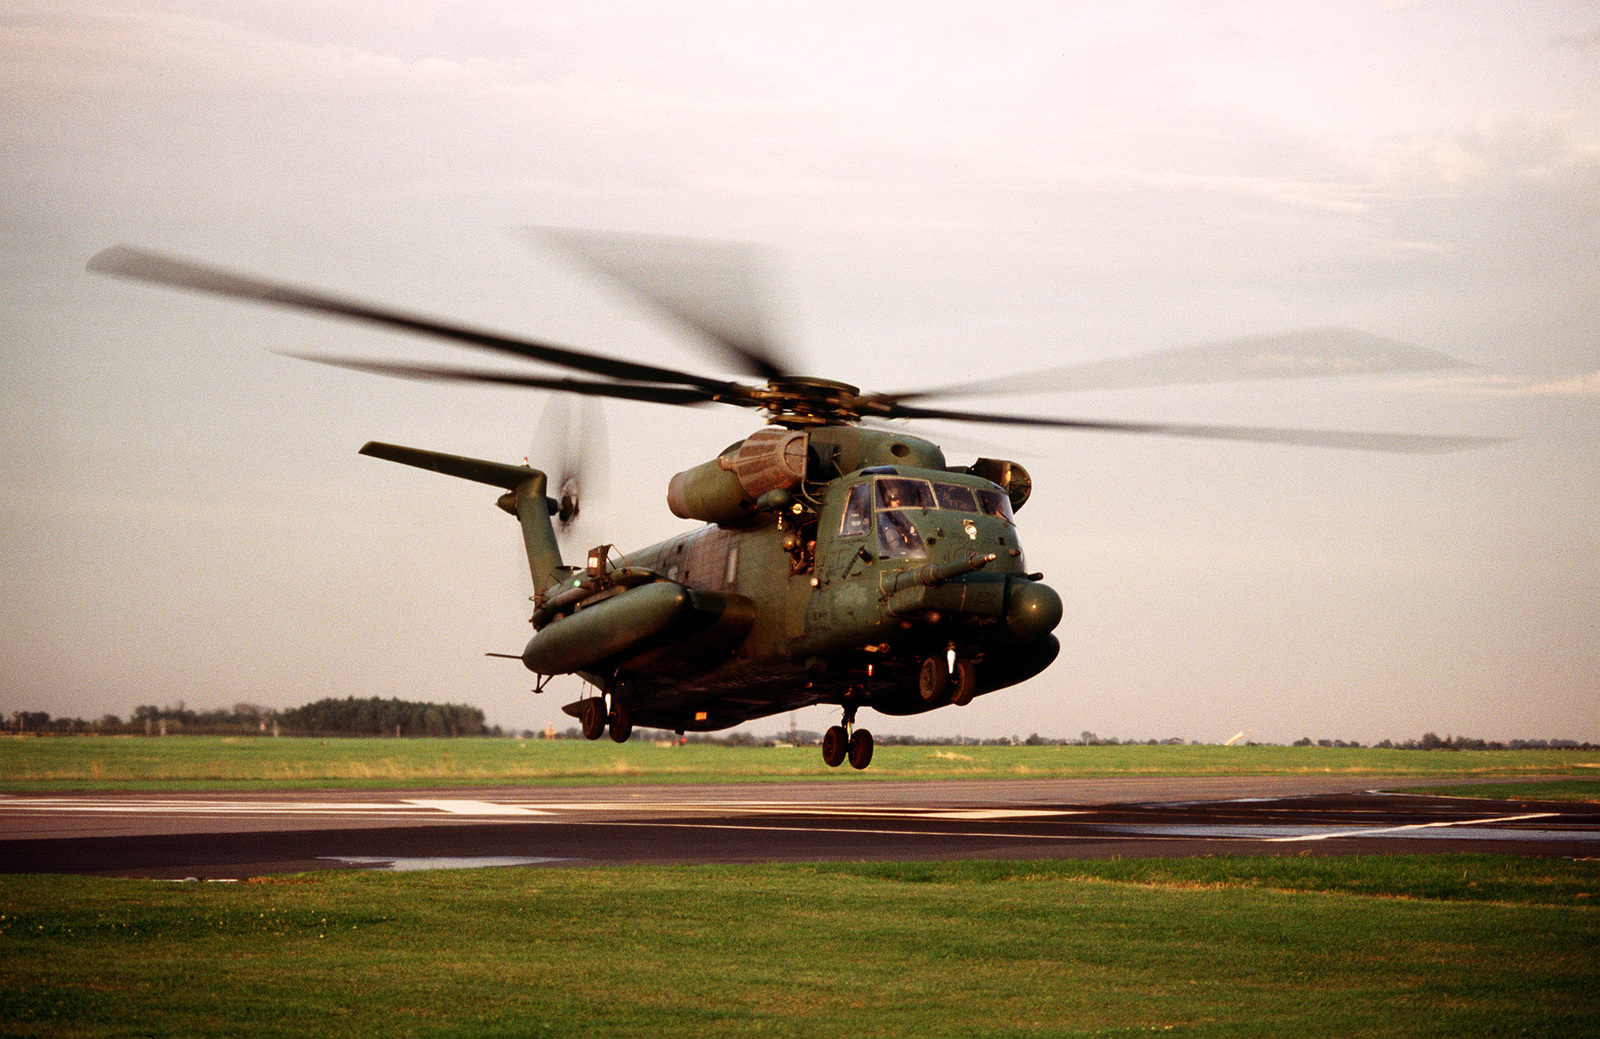 A U.S. Air Force MH-53 departs for a mission. The MH-53's were used to move troops throughout the exercise area.(Exact date unknown)